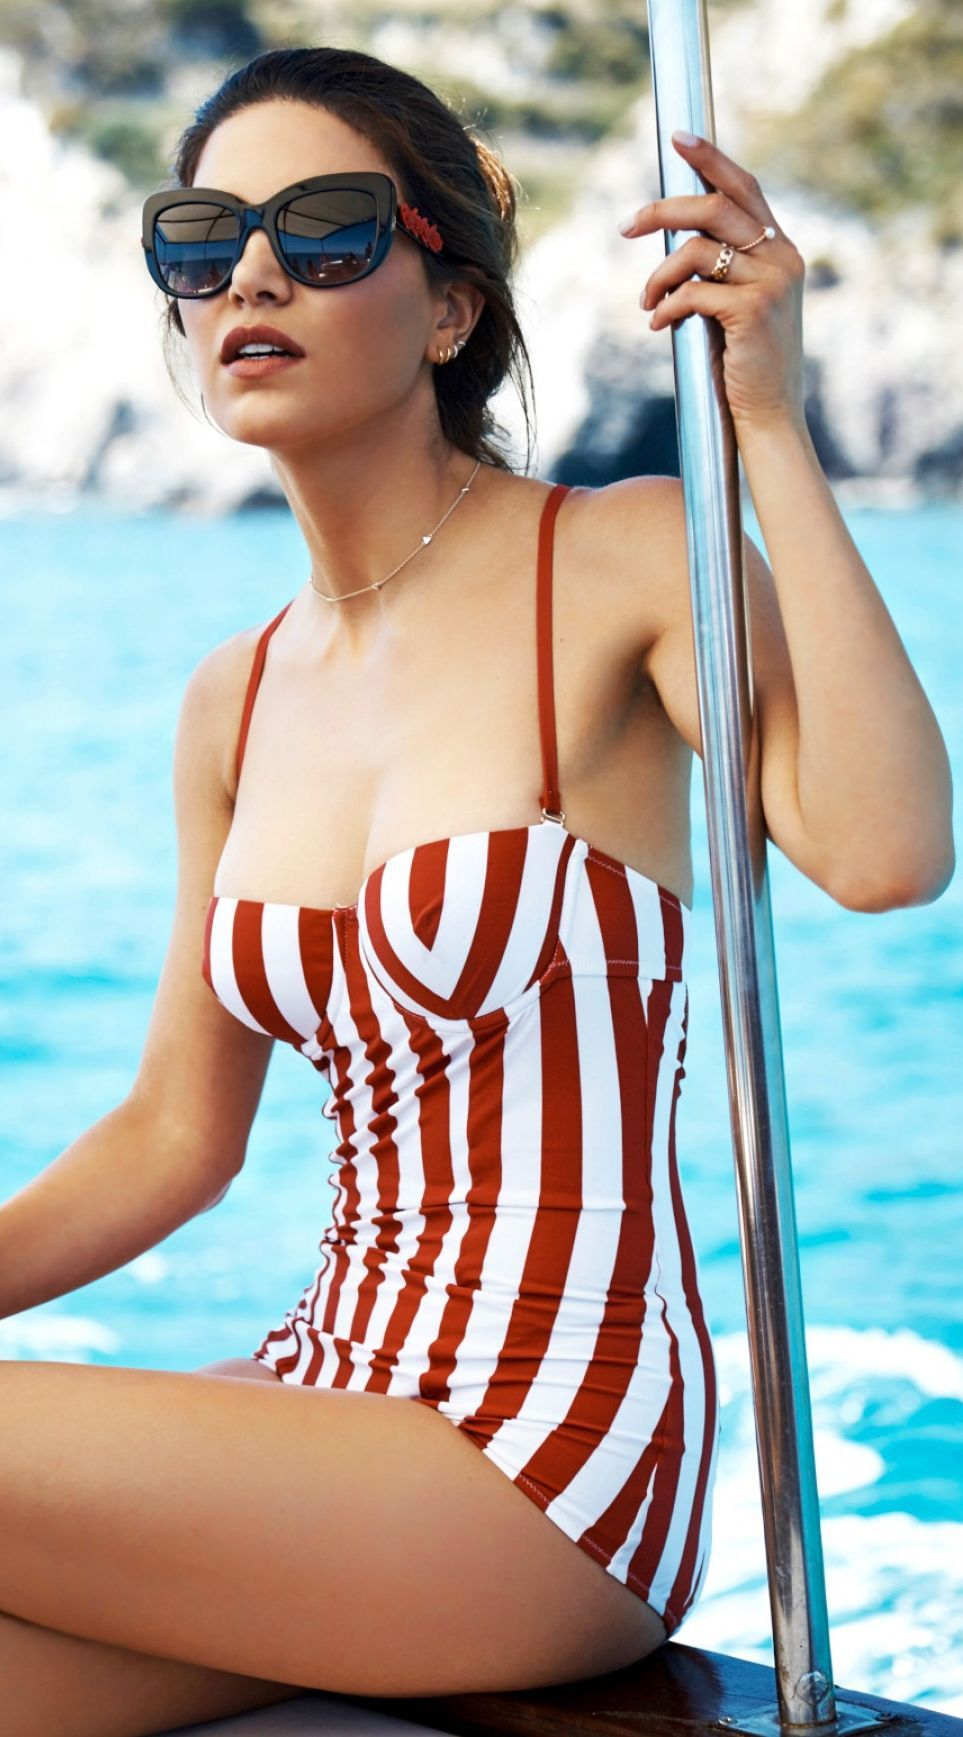 Vintage Swimwear One Piece Part - 38: Striped Retro One Piece Swimsuit By Negin Mirsalehi